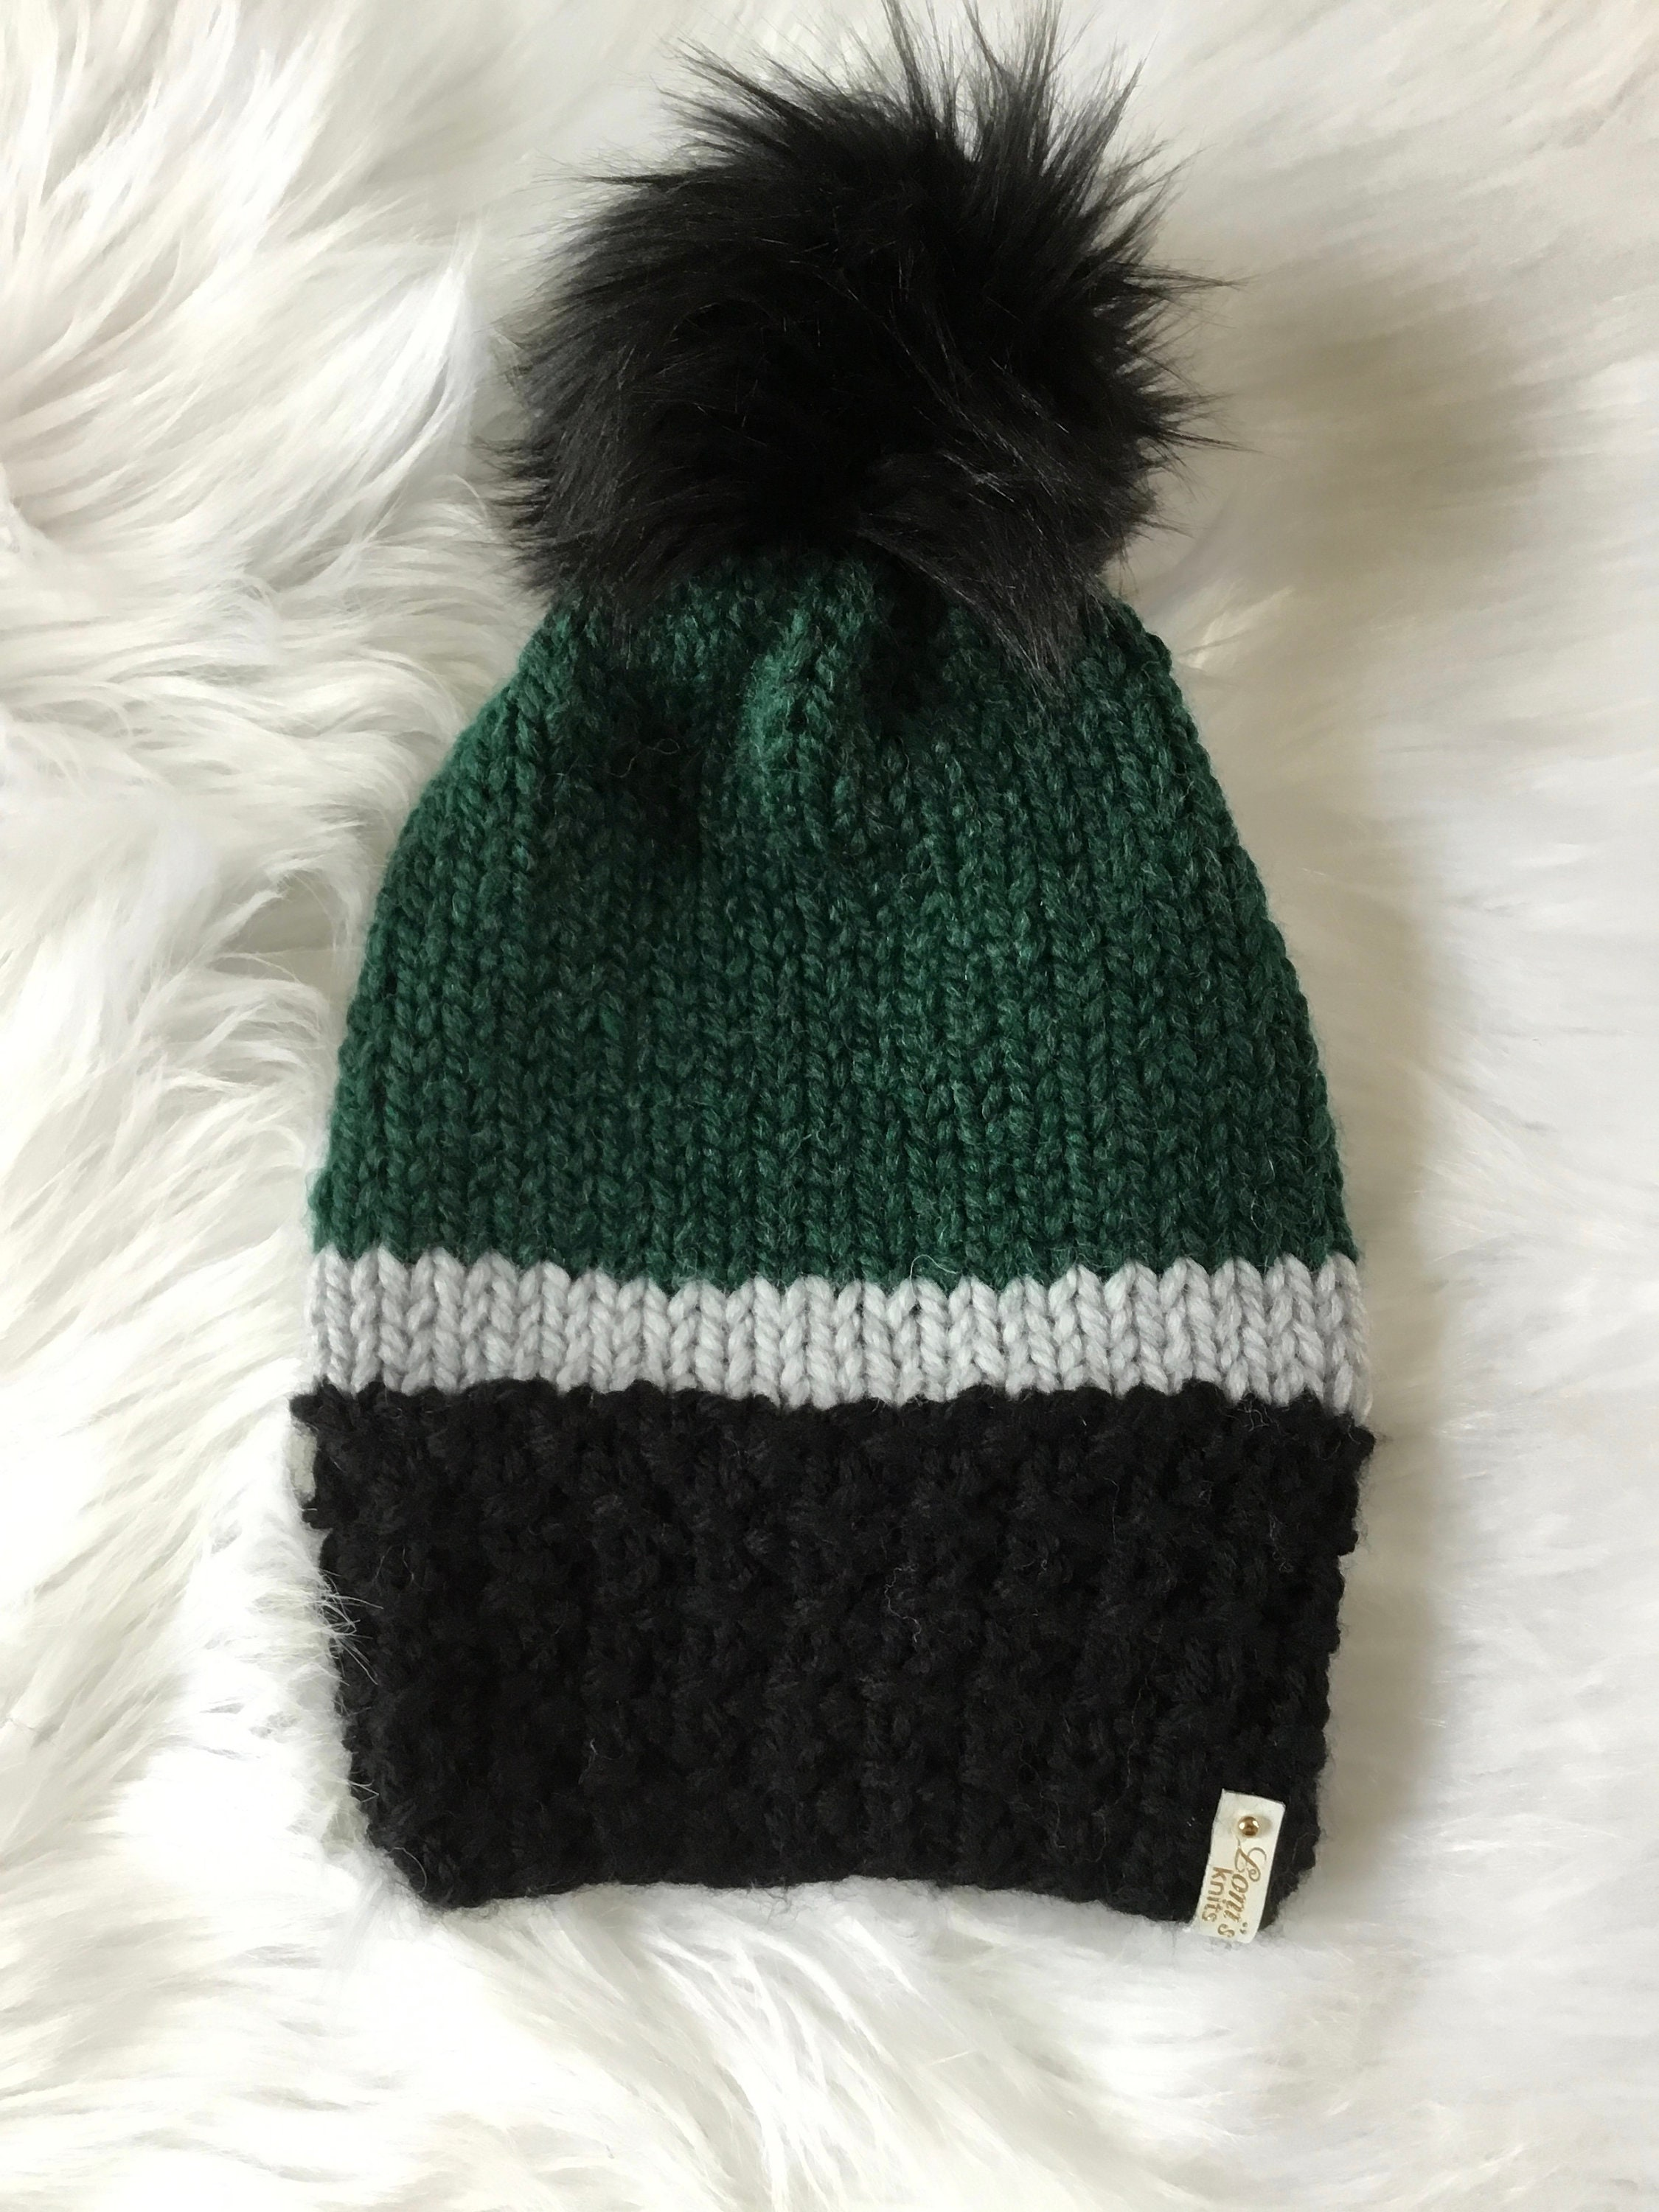 3af4fa6e Philly Special! Philadelphia Eagles - Super Bowl Champions Hand Knit Luxury  Hats. FREE SHIPPING!